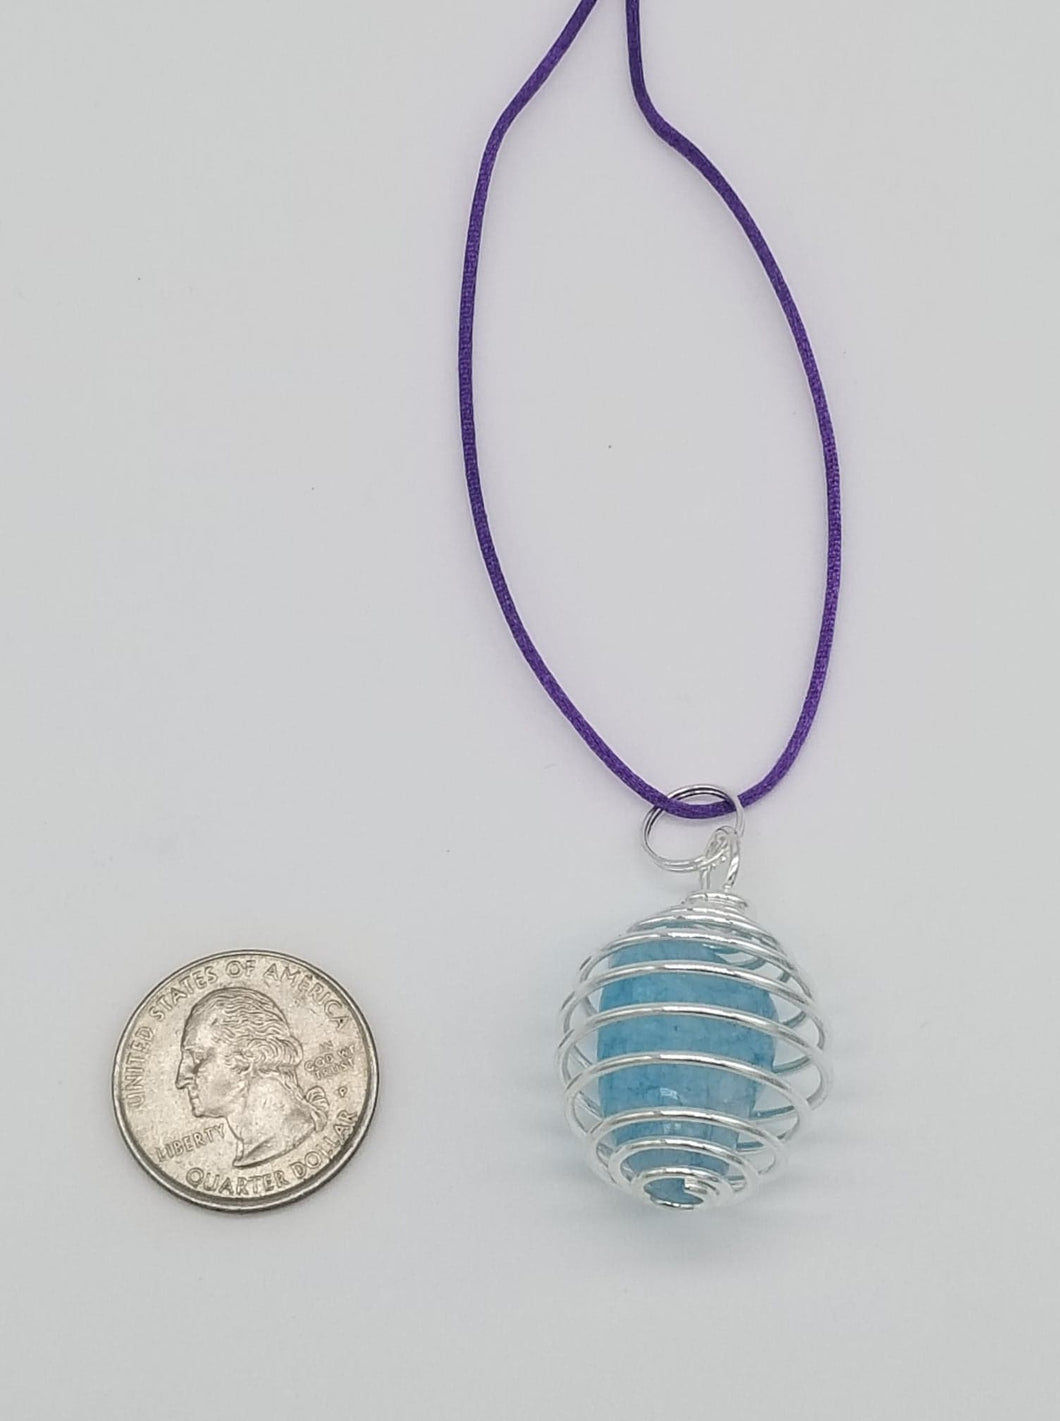 Blue Dyed Crackle Quartz Cage Necklace for Psychic Abilities